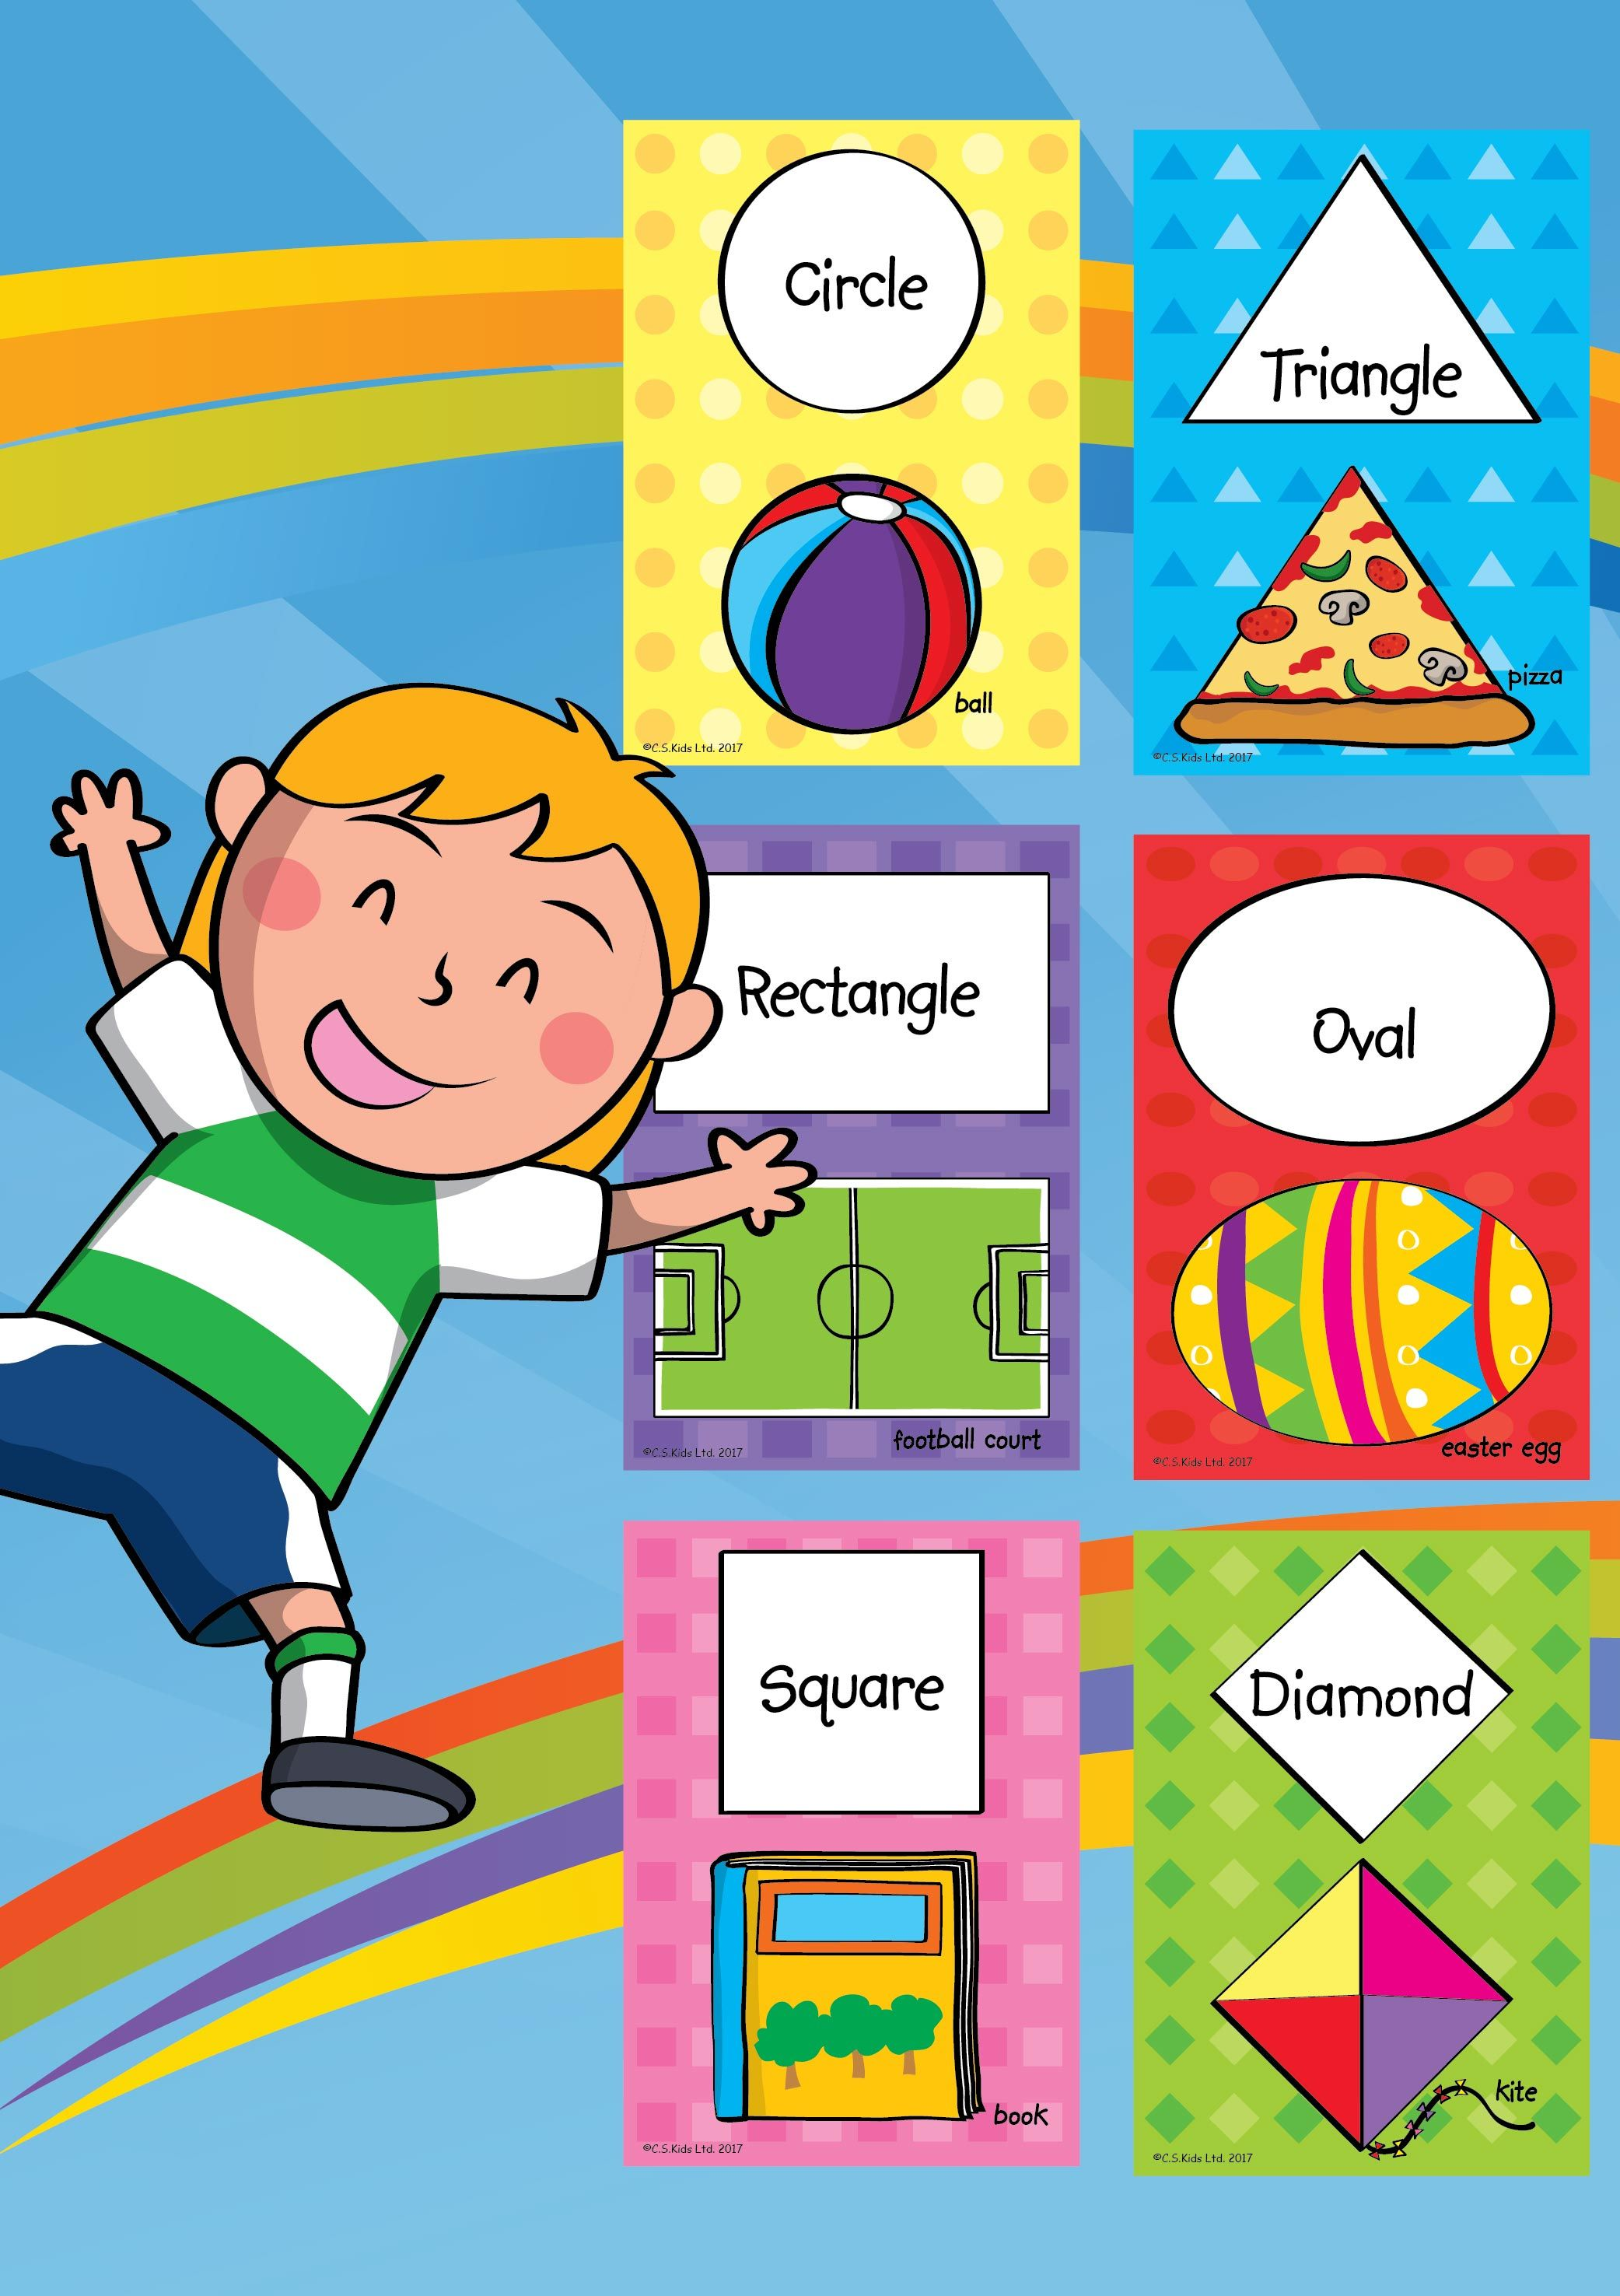 Basic Shapes Flashcards